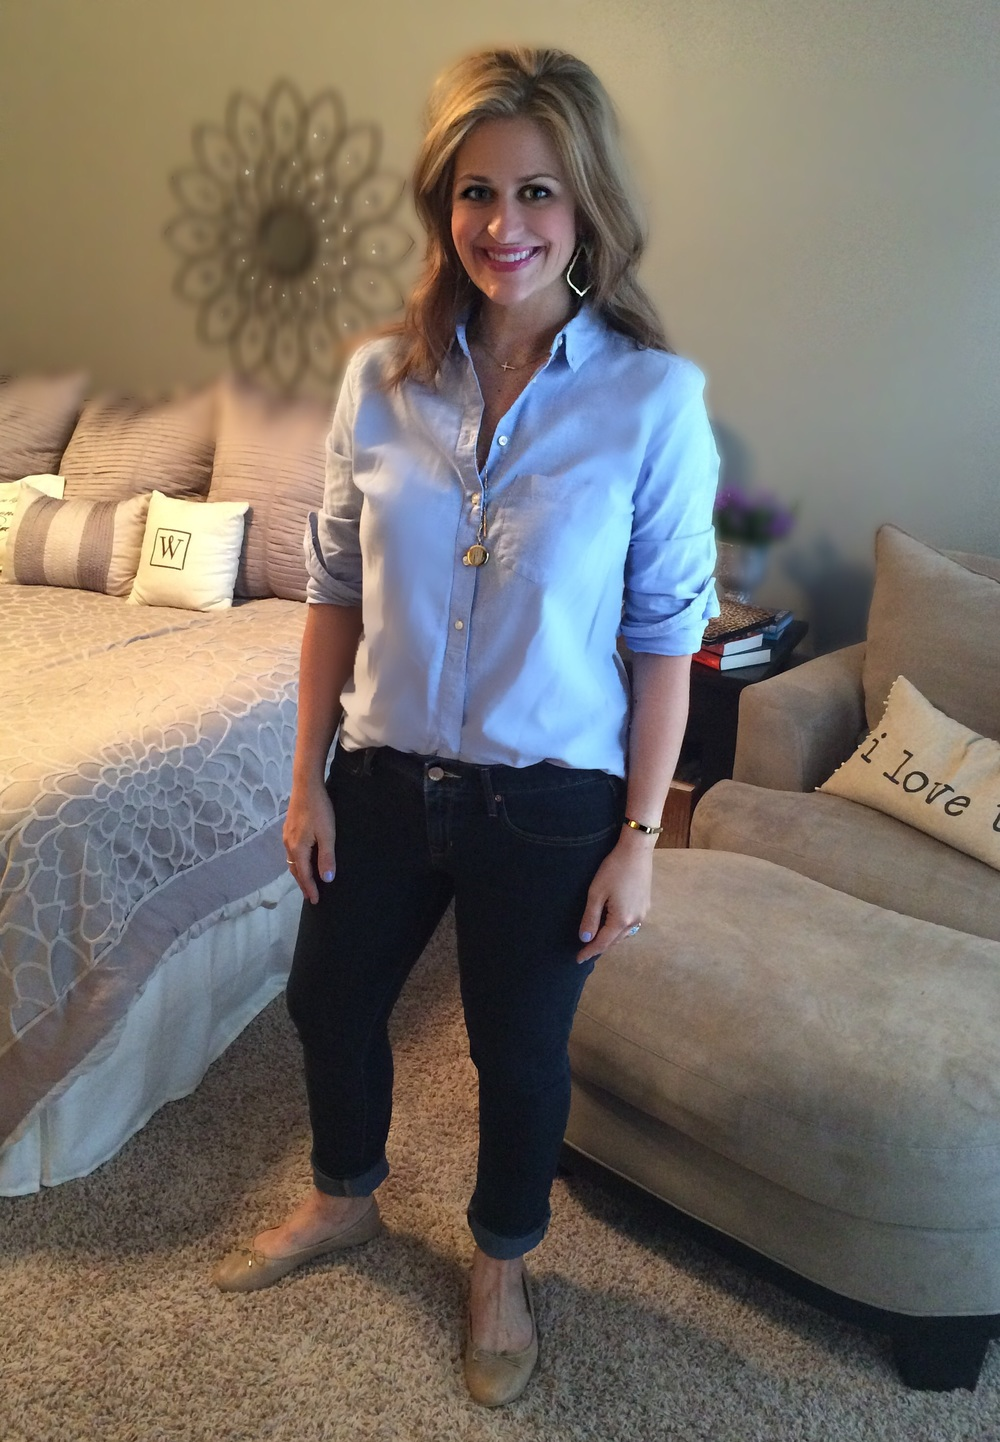 Jeans:  Gap Always Skinny  Shirt:  Gap Oxford  Necklaces: Both Stella & Dot ( sideways cross  &  engravable locket )  Earrings:  Kendra Scott  Shoes:  Sam Edelman